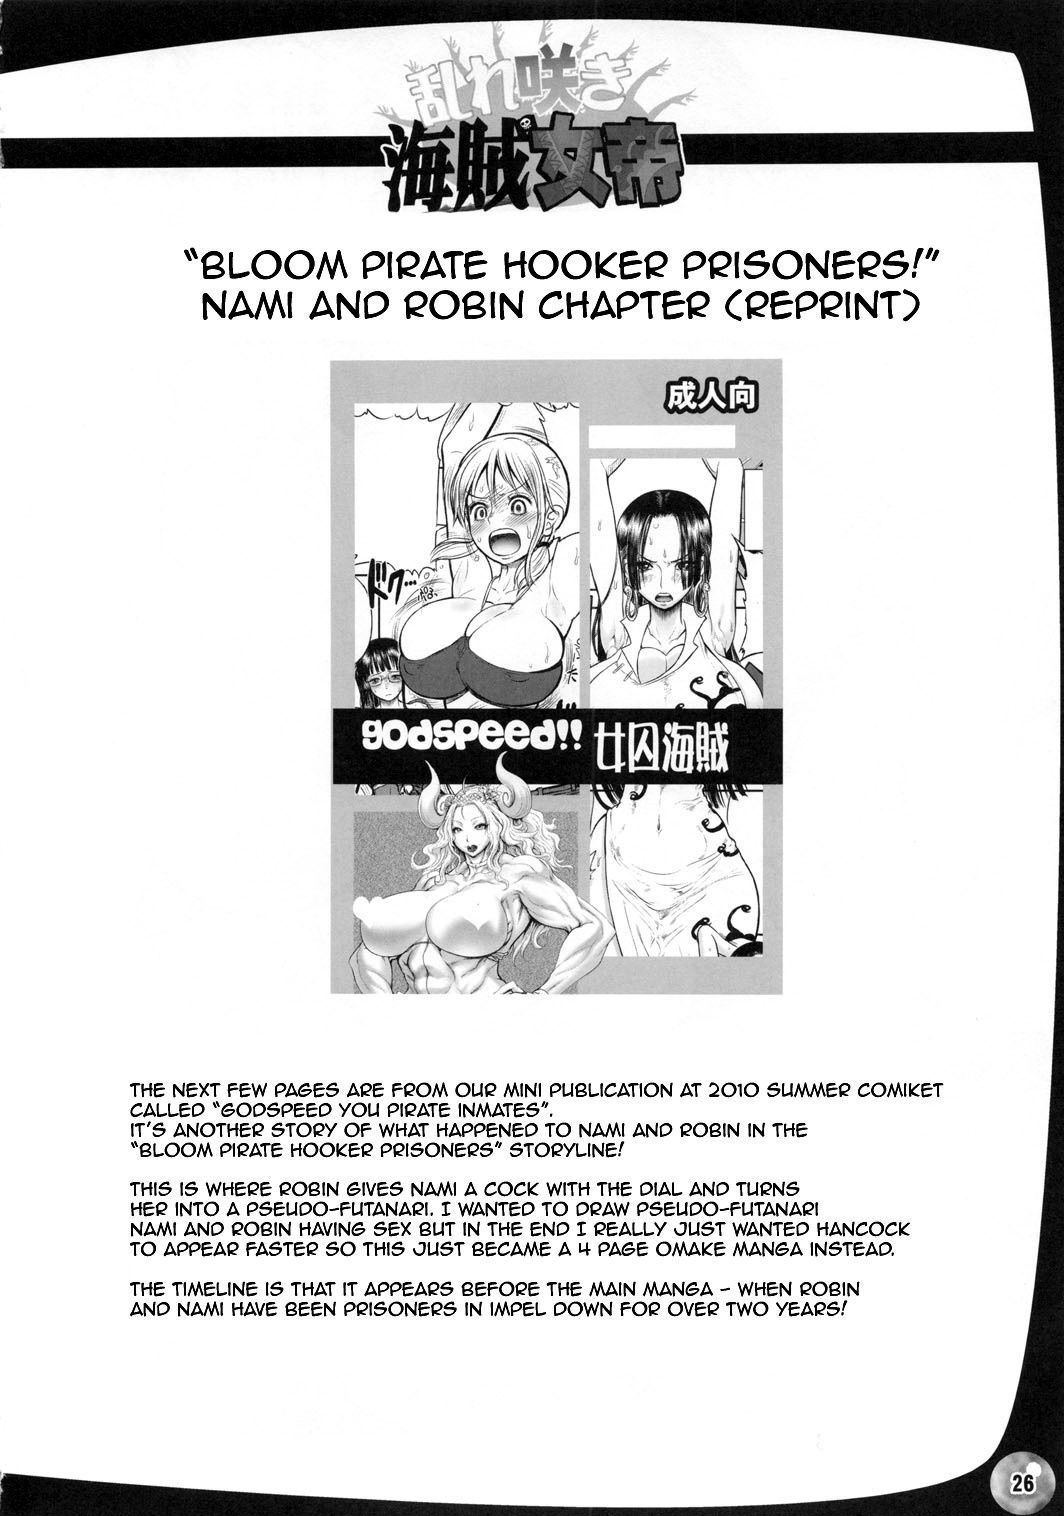 Bloom pirate hooker queen hentai manga picture 19